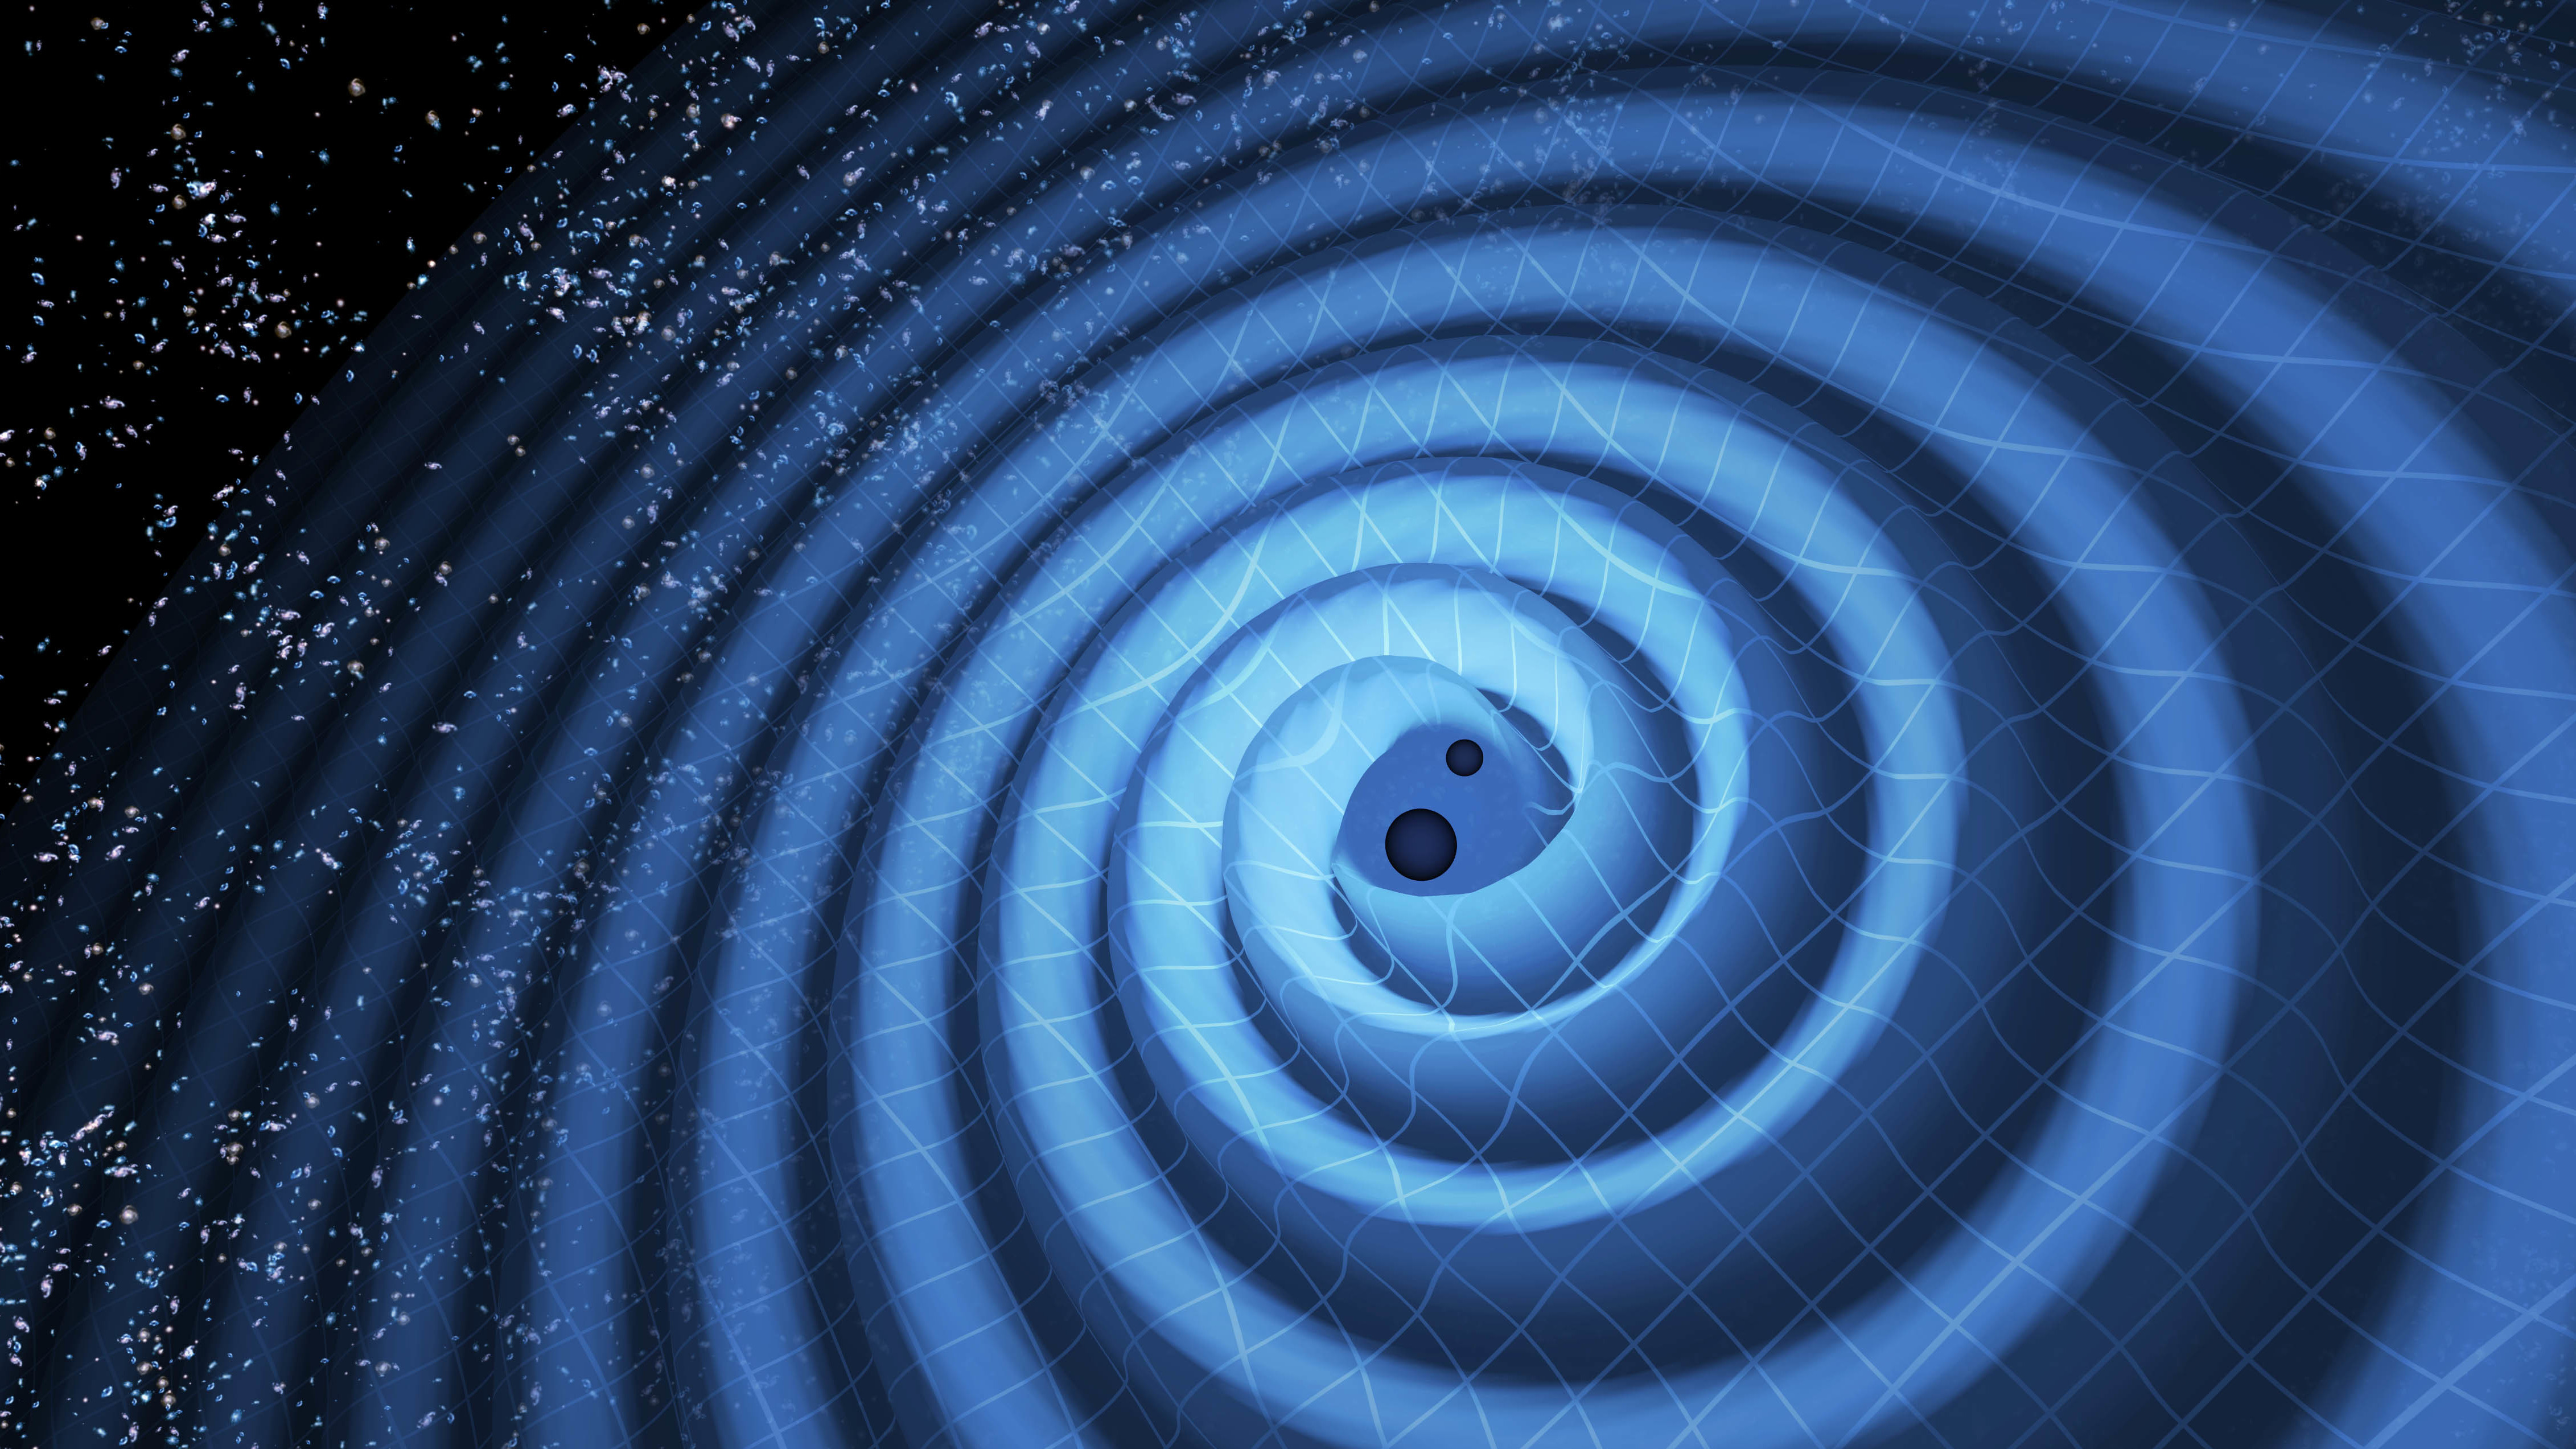 Gravitational Waves From Colliding Black Holes Shake Scientists' Detectors Again